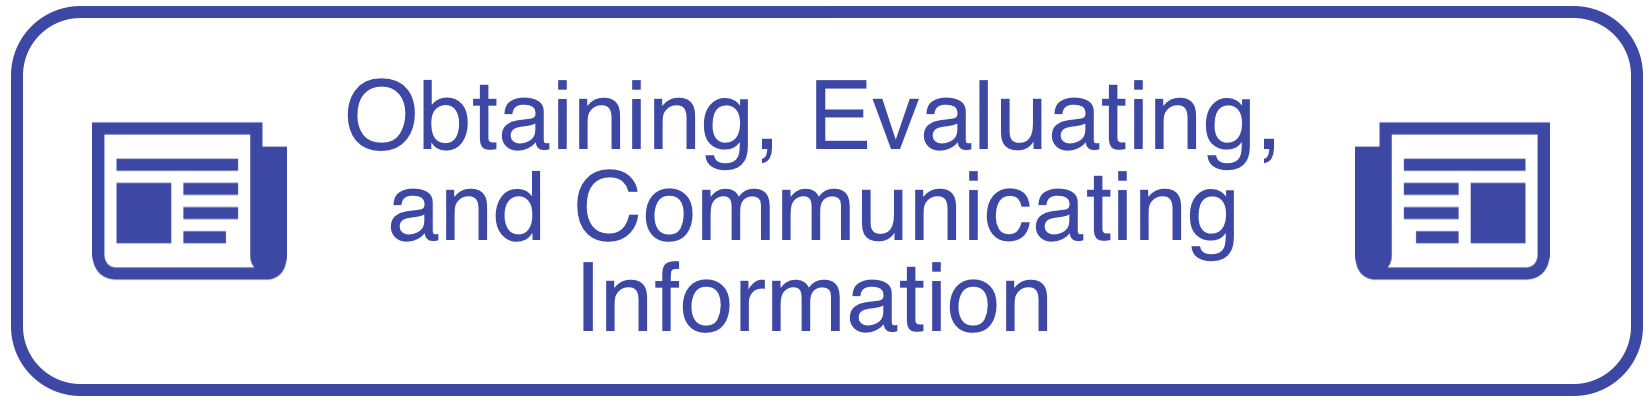 Obtaining_Evaluating_and_Communicating_Information.png